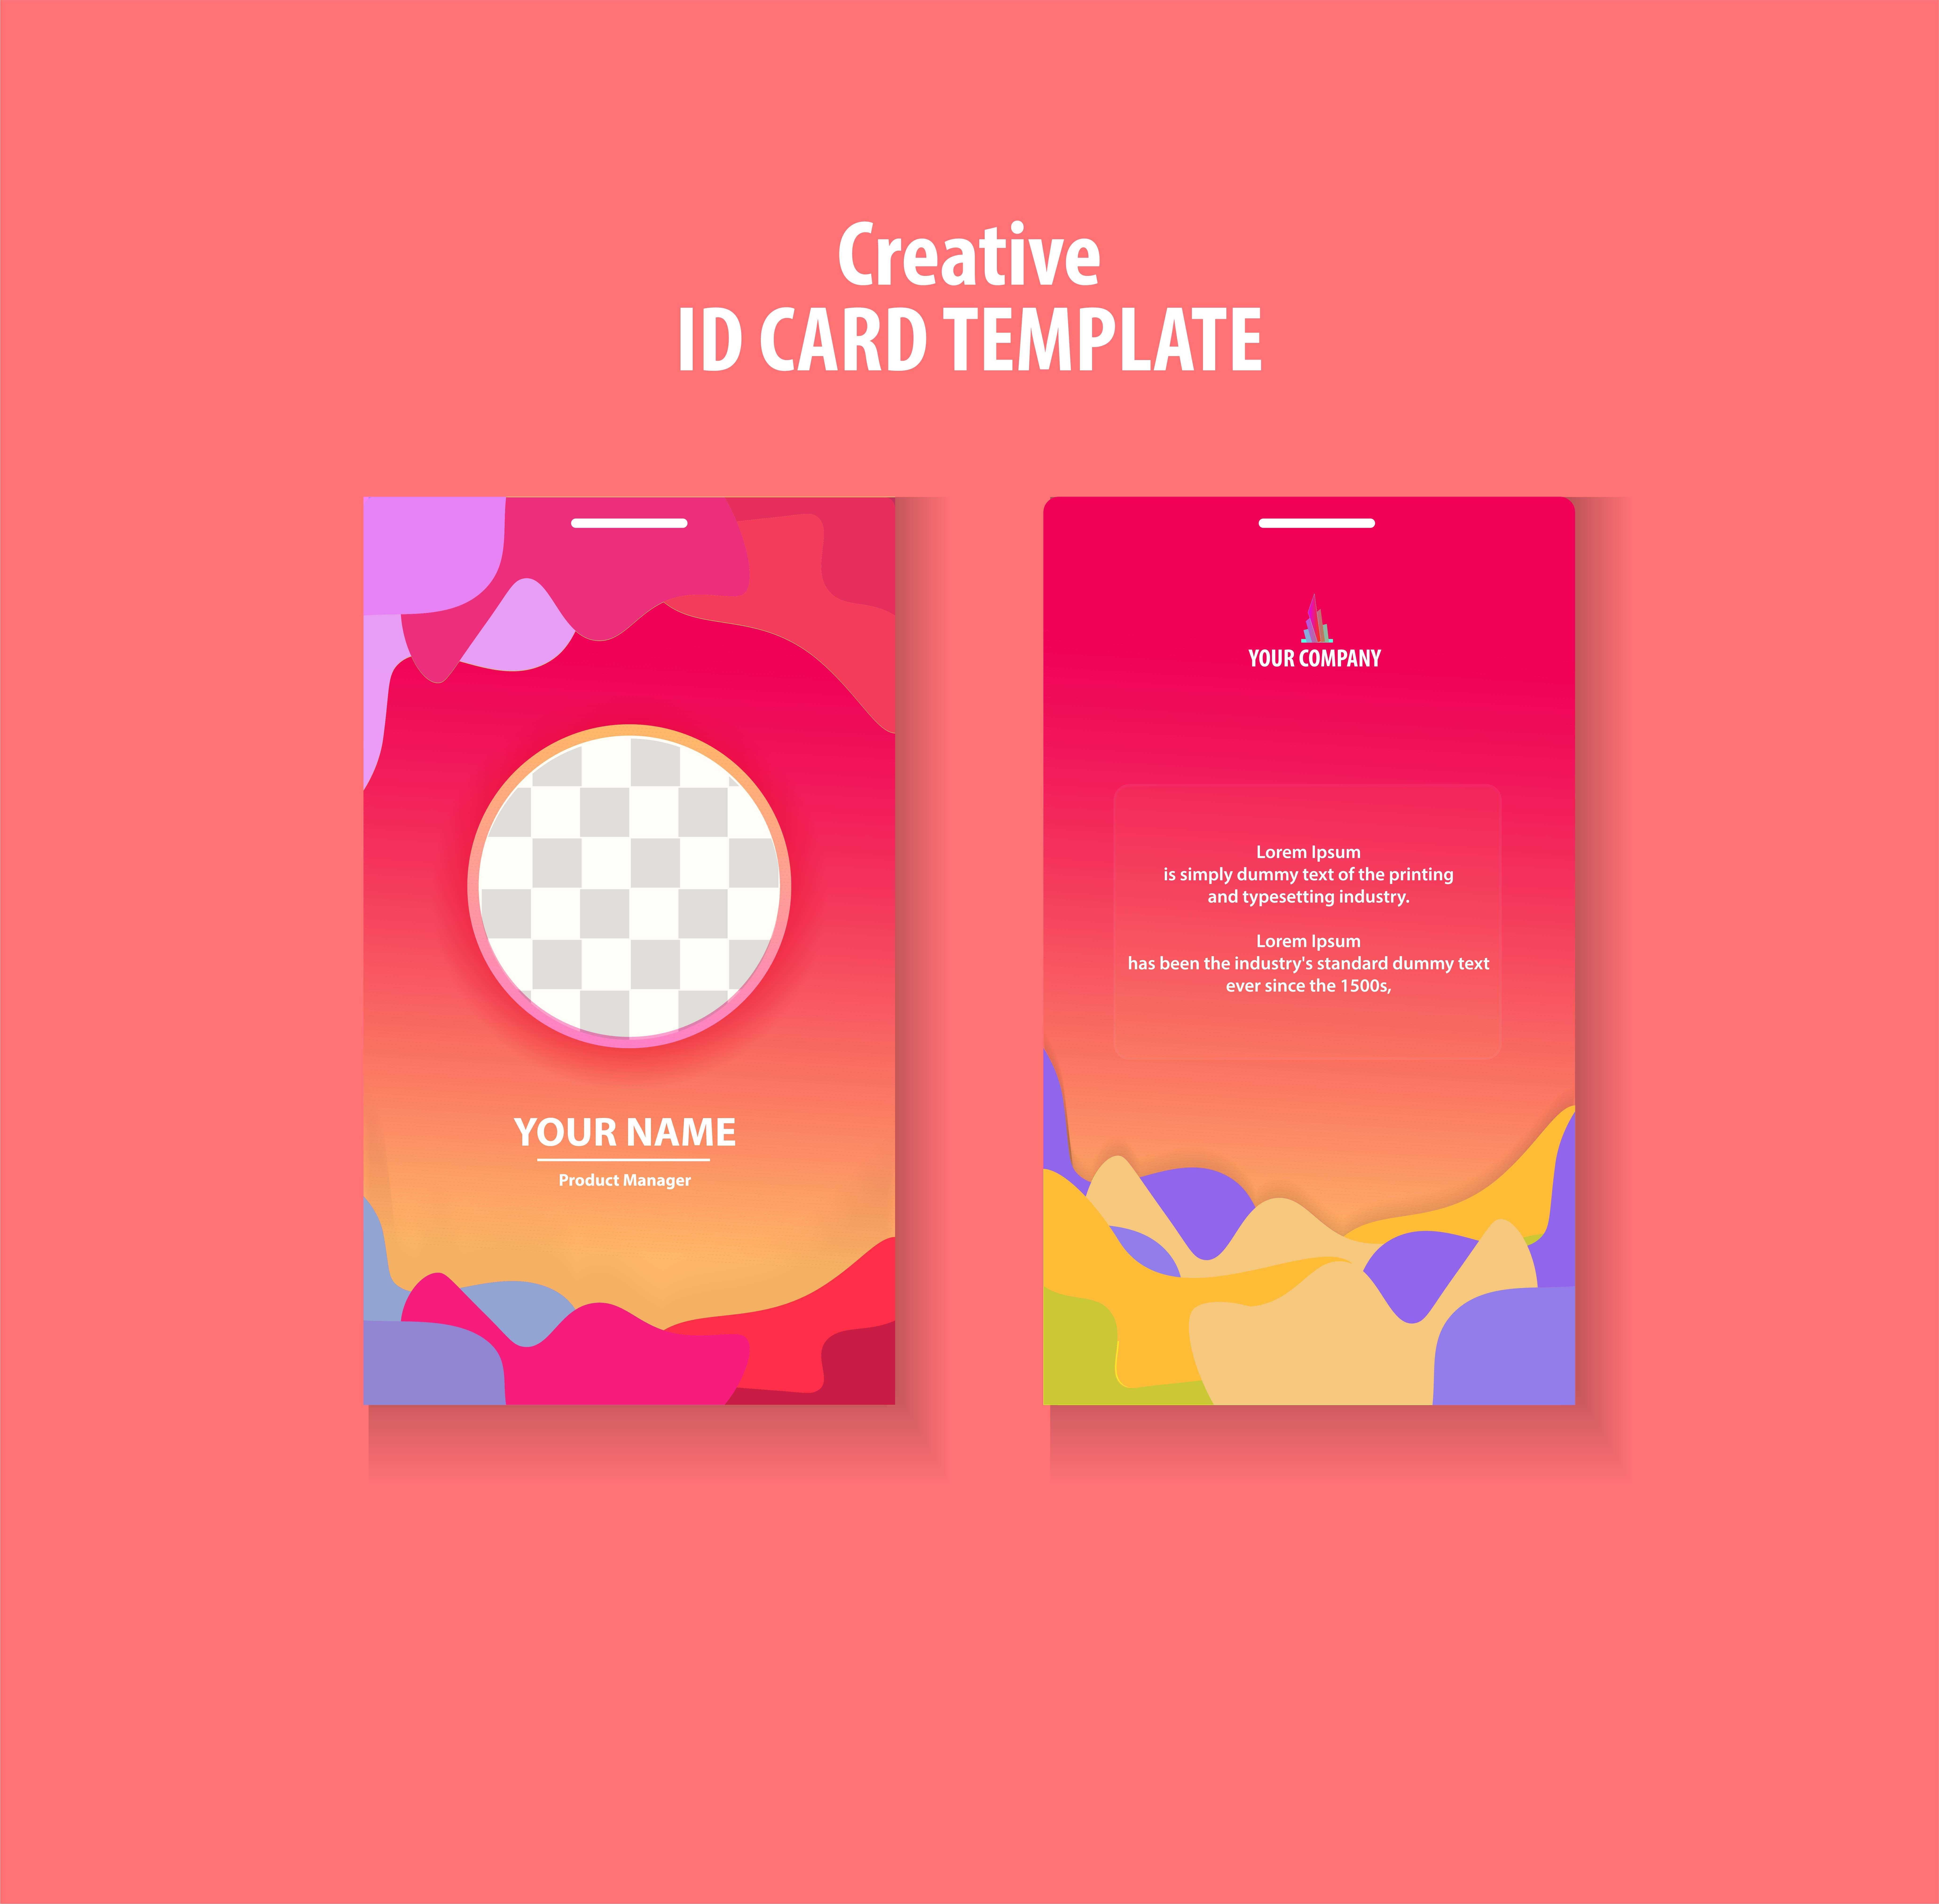 Employee Id Card Template Free Vector Art – (9 Free Downloads) In Pvc Card Template